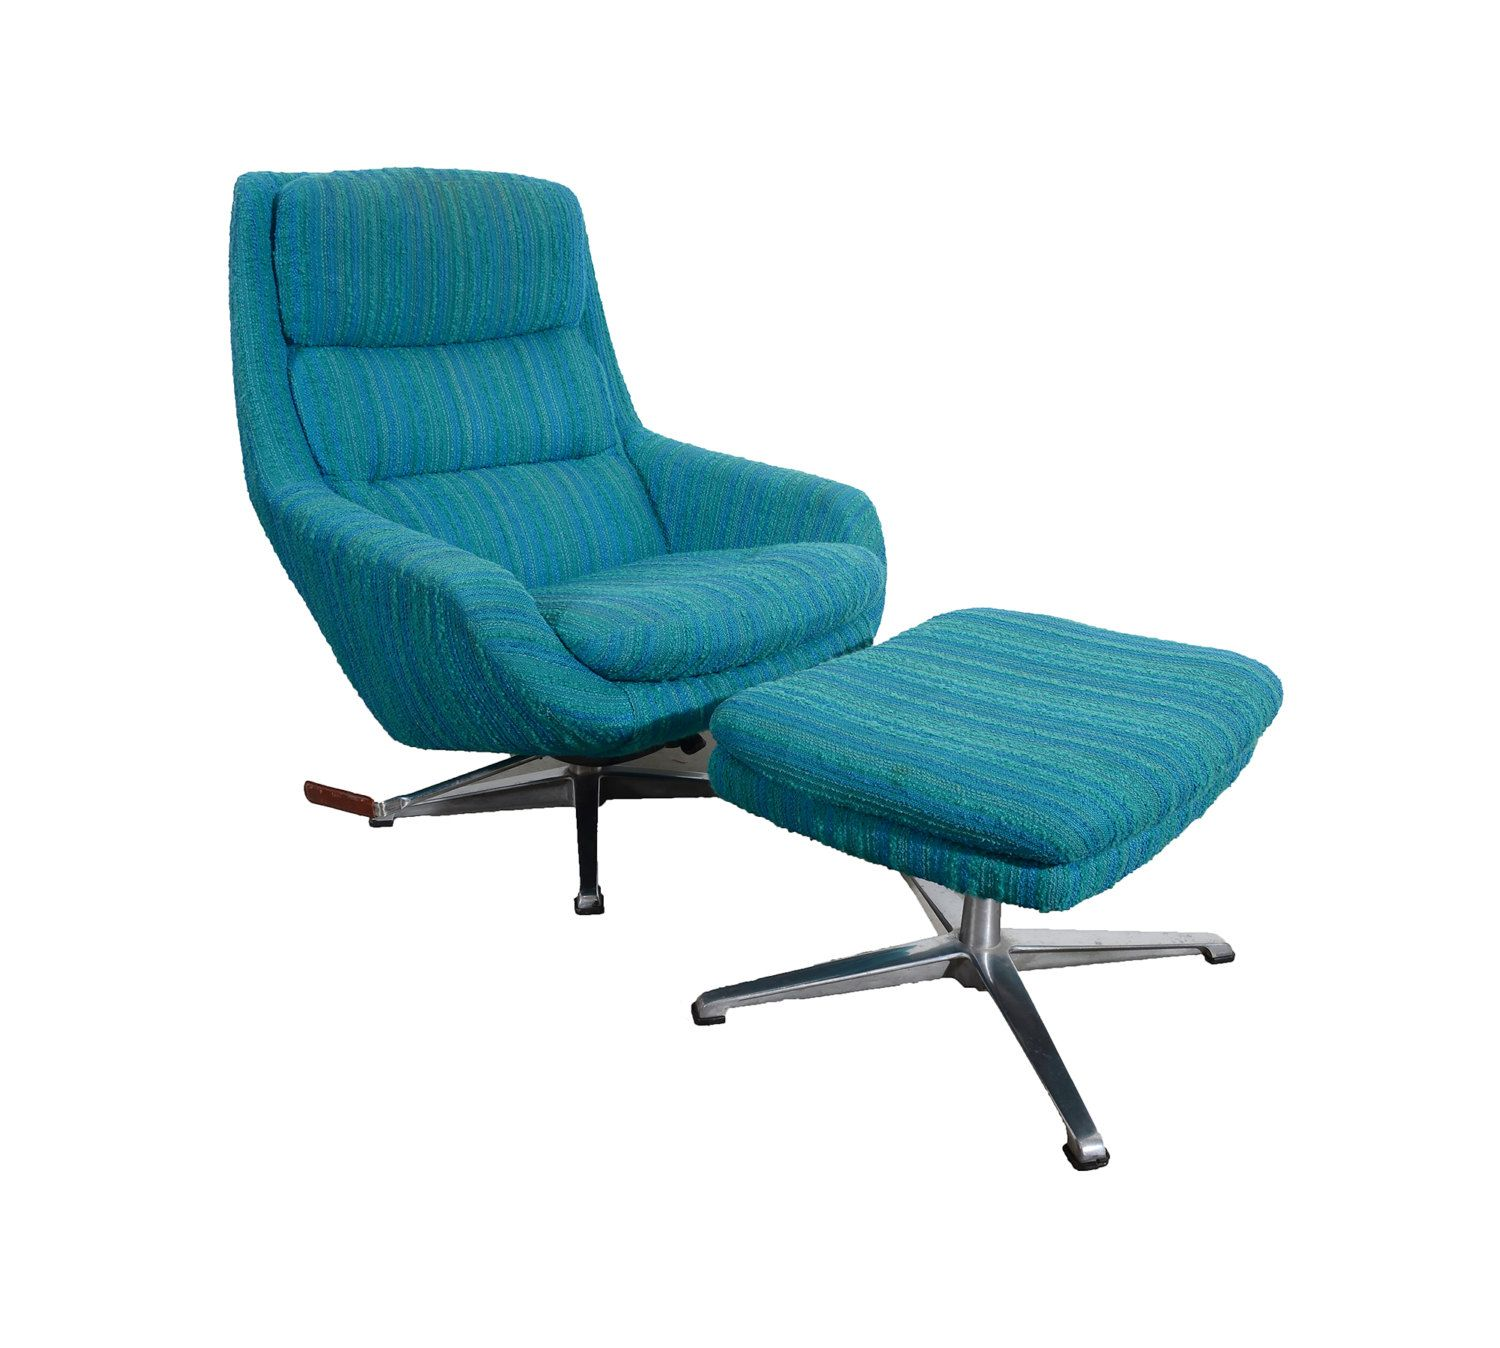 Overman Lounge Chair And Ottoman Recliner Sweden Danish Modern Mcm